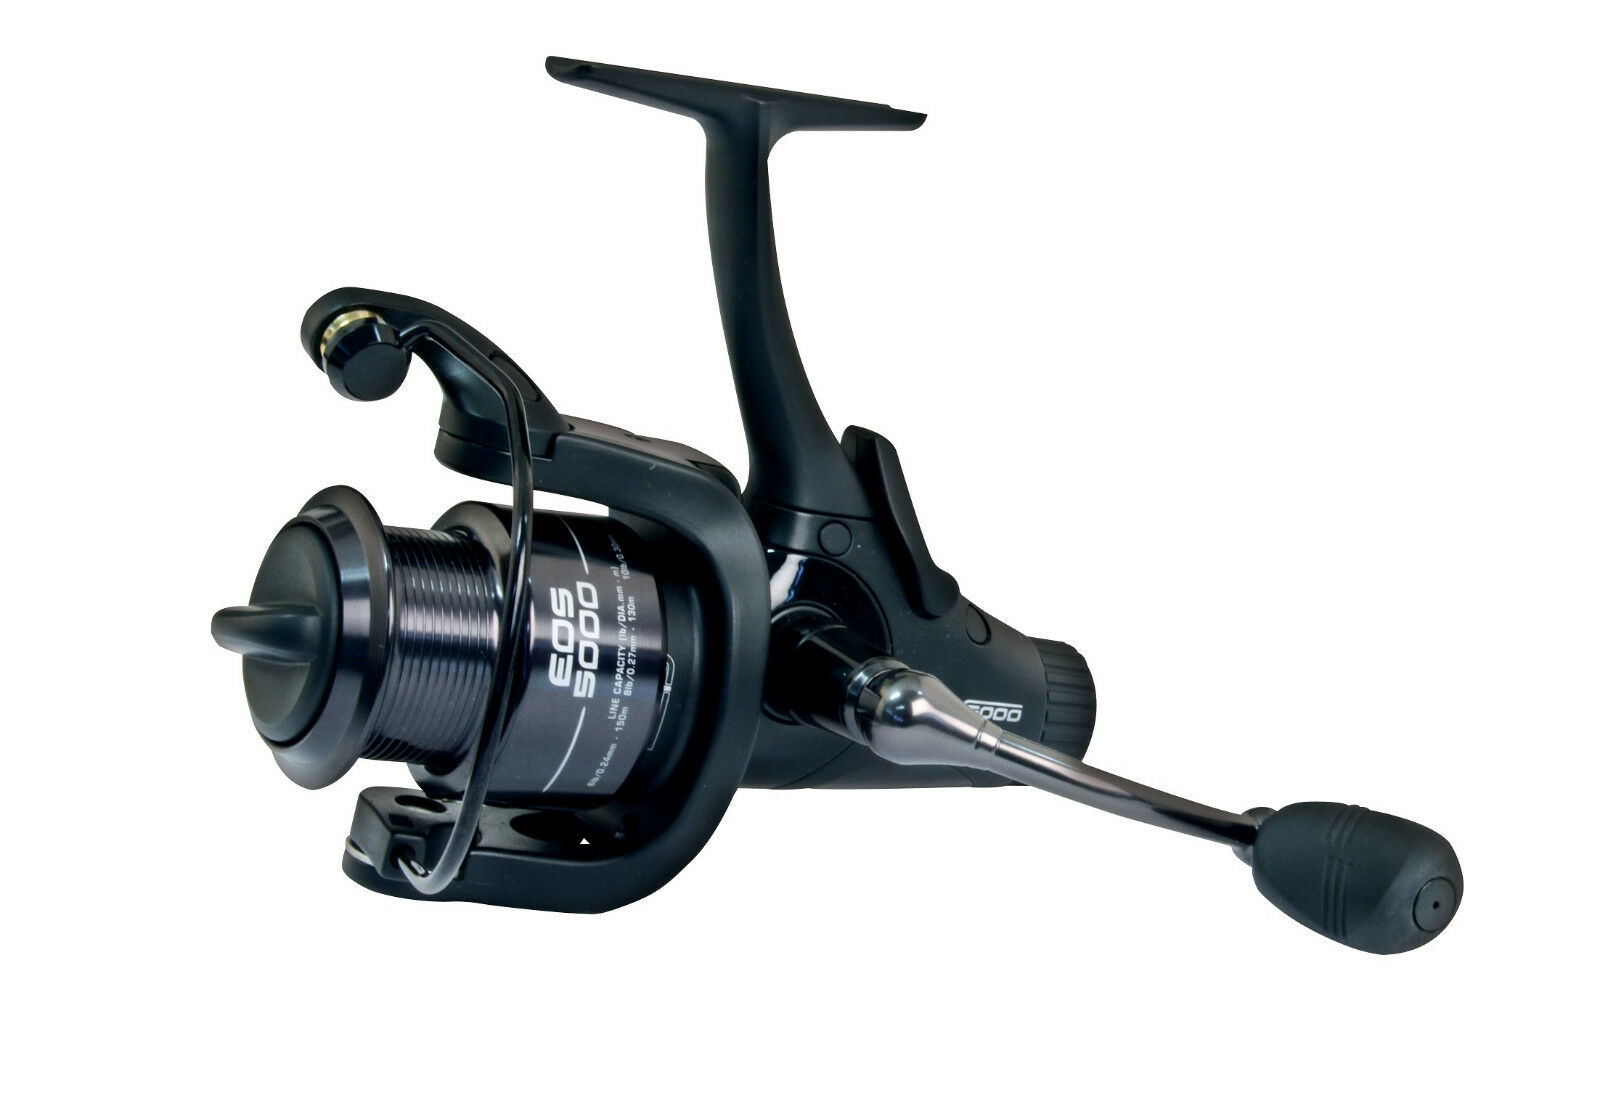 Fox Eos 5000 CRL062 Rolle Reel Angelrolle Karpfenrolle Freilaufrolle Rolle